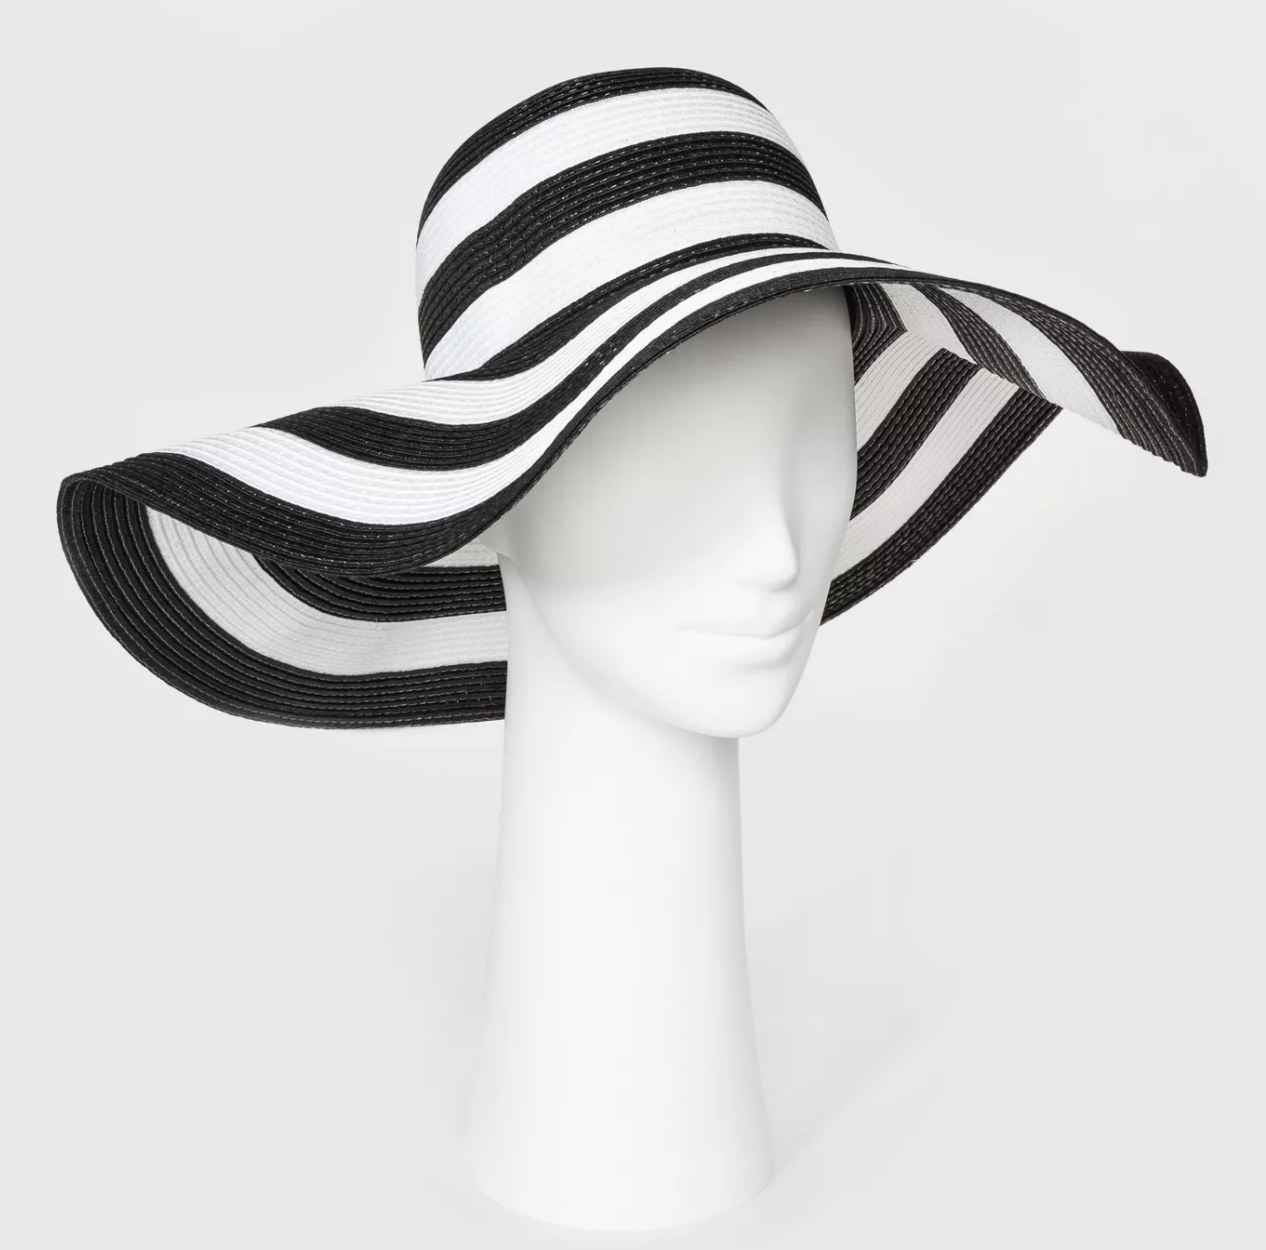 The black and white striped hat with dramatic oversized brim